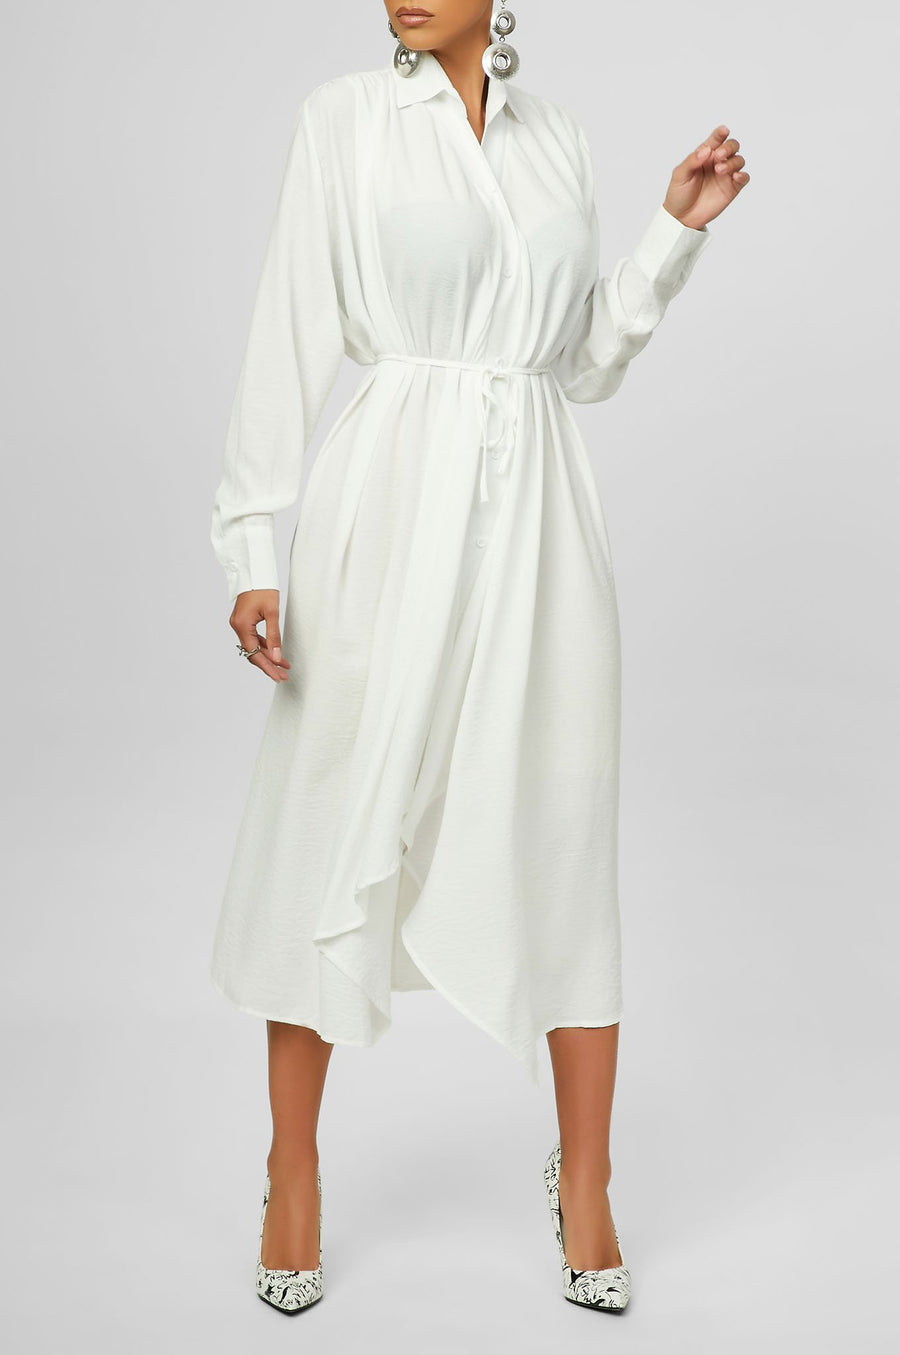 Getting It Done Dress (White)